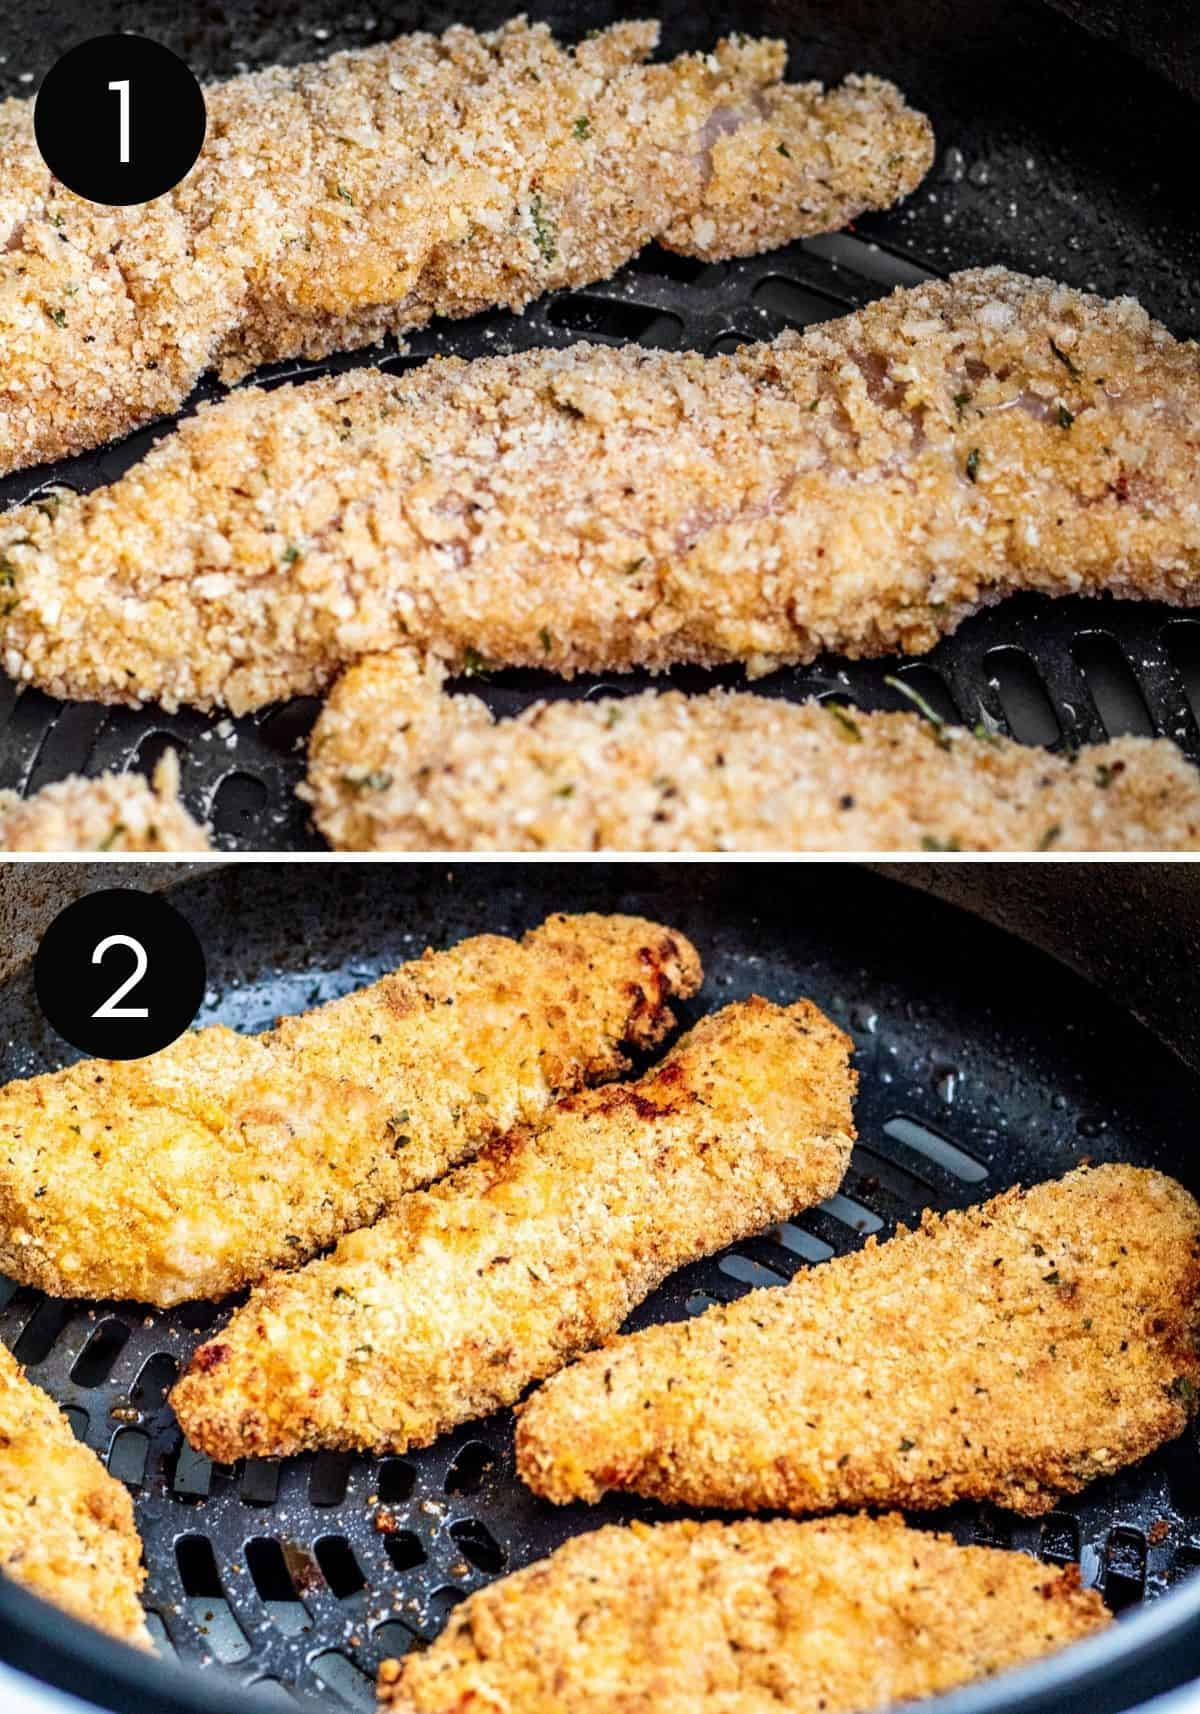 Two prep images showing chicken being air fried.